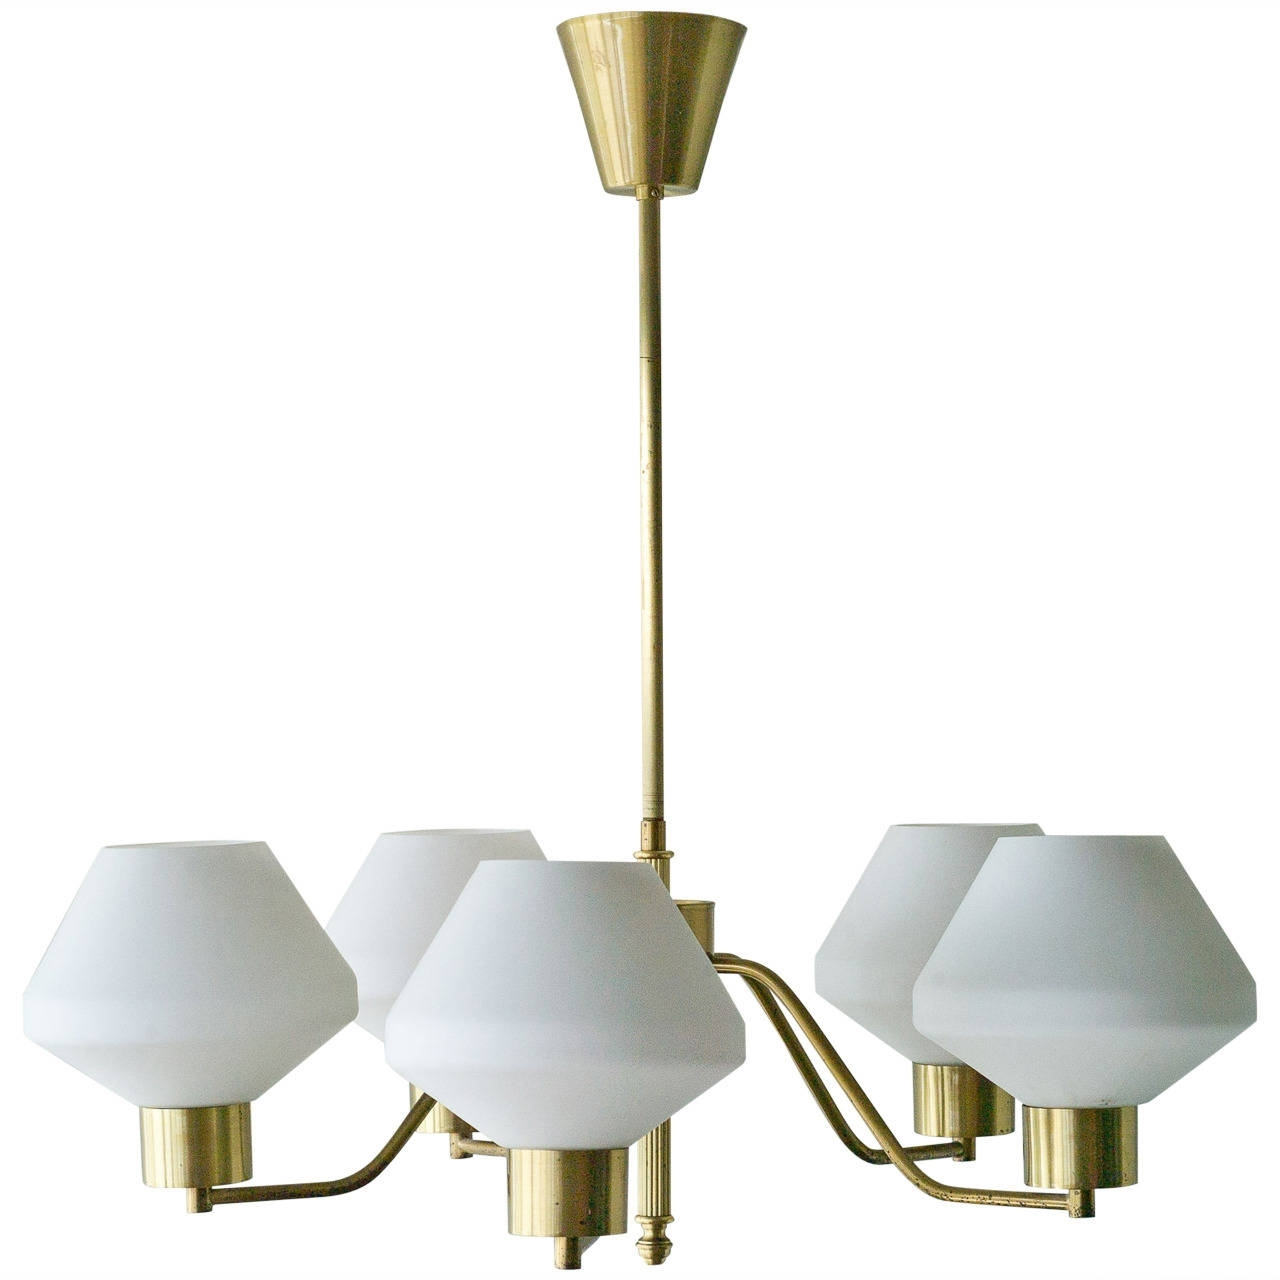 Current 1950S Scandinavian Chandelier In Brass And Frosted Glass Throughout Scandinavian Chandeliers (Gallery 5 of 20)